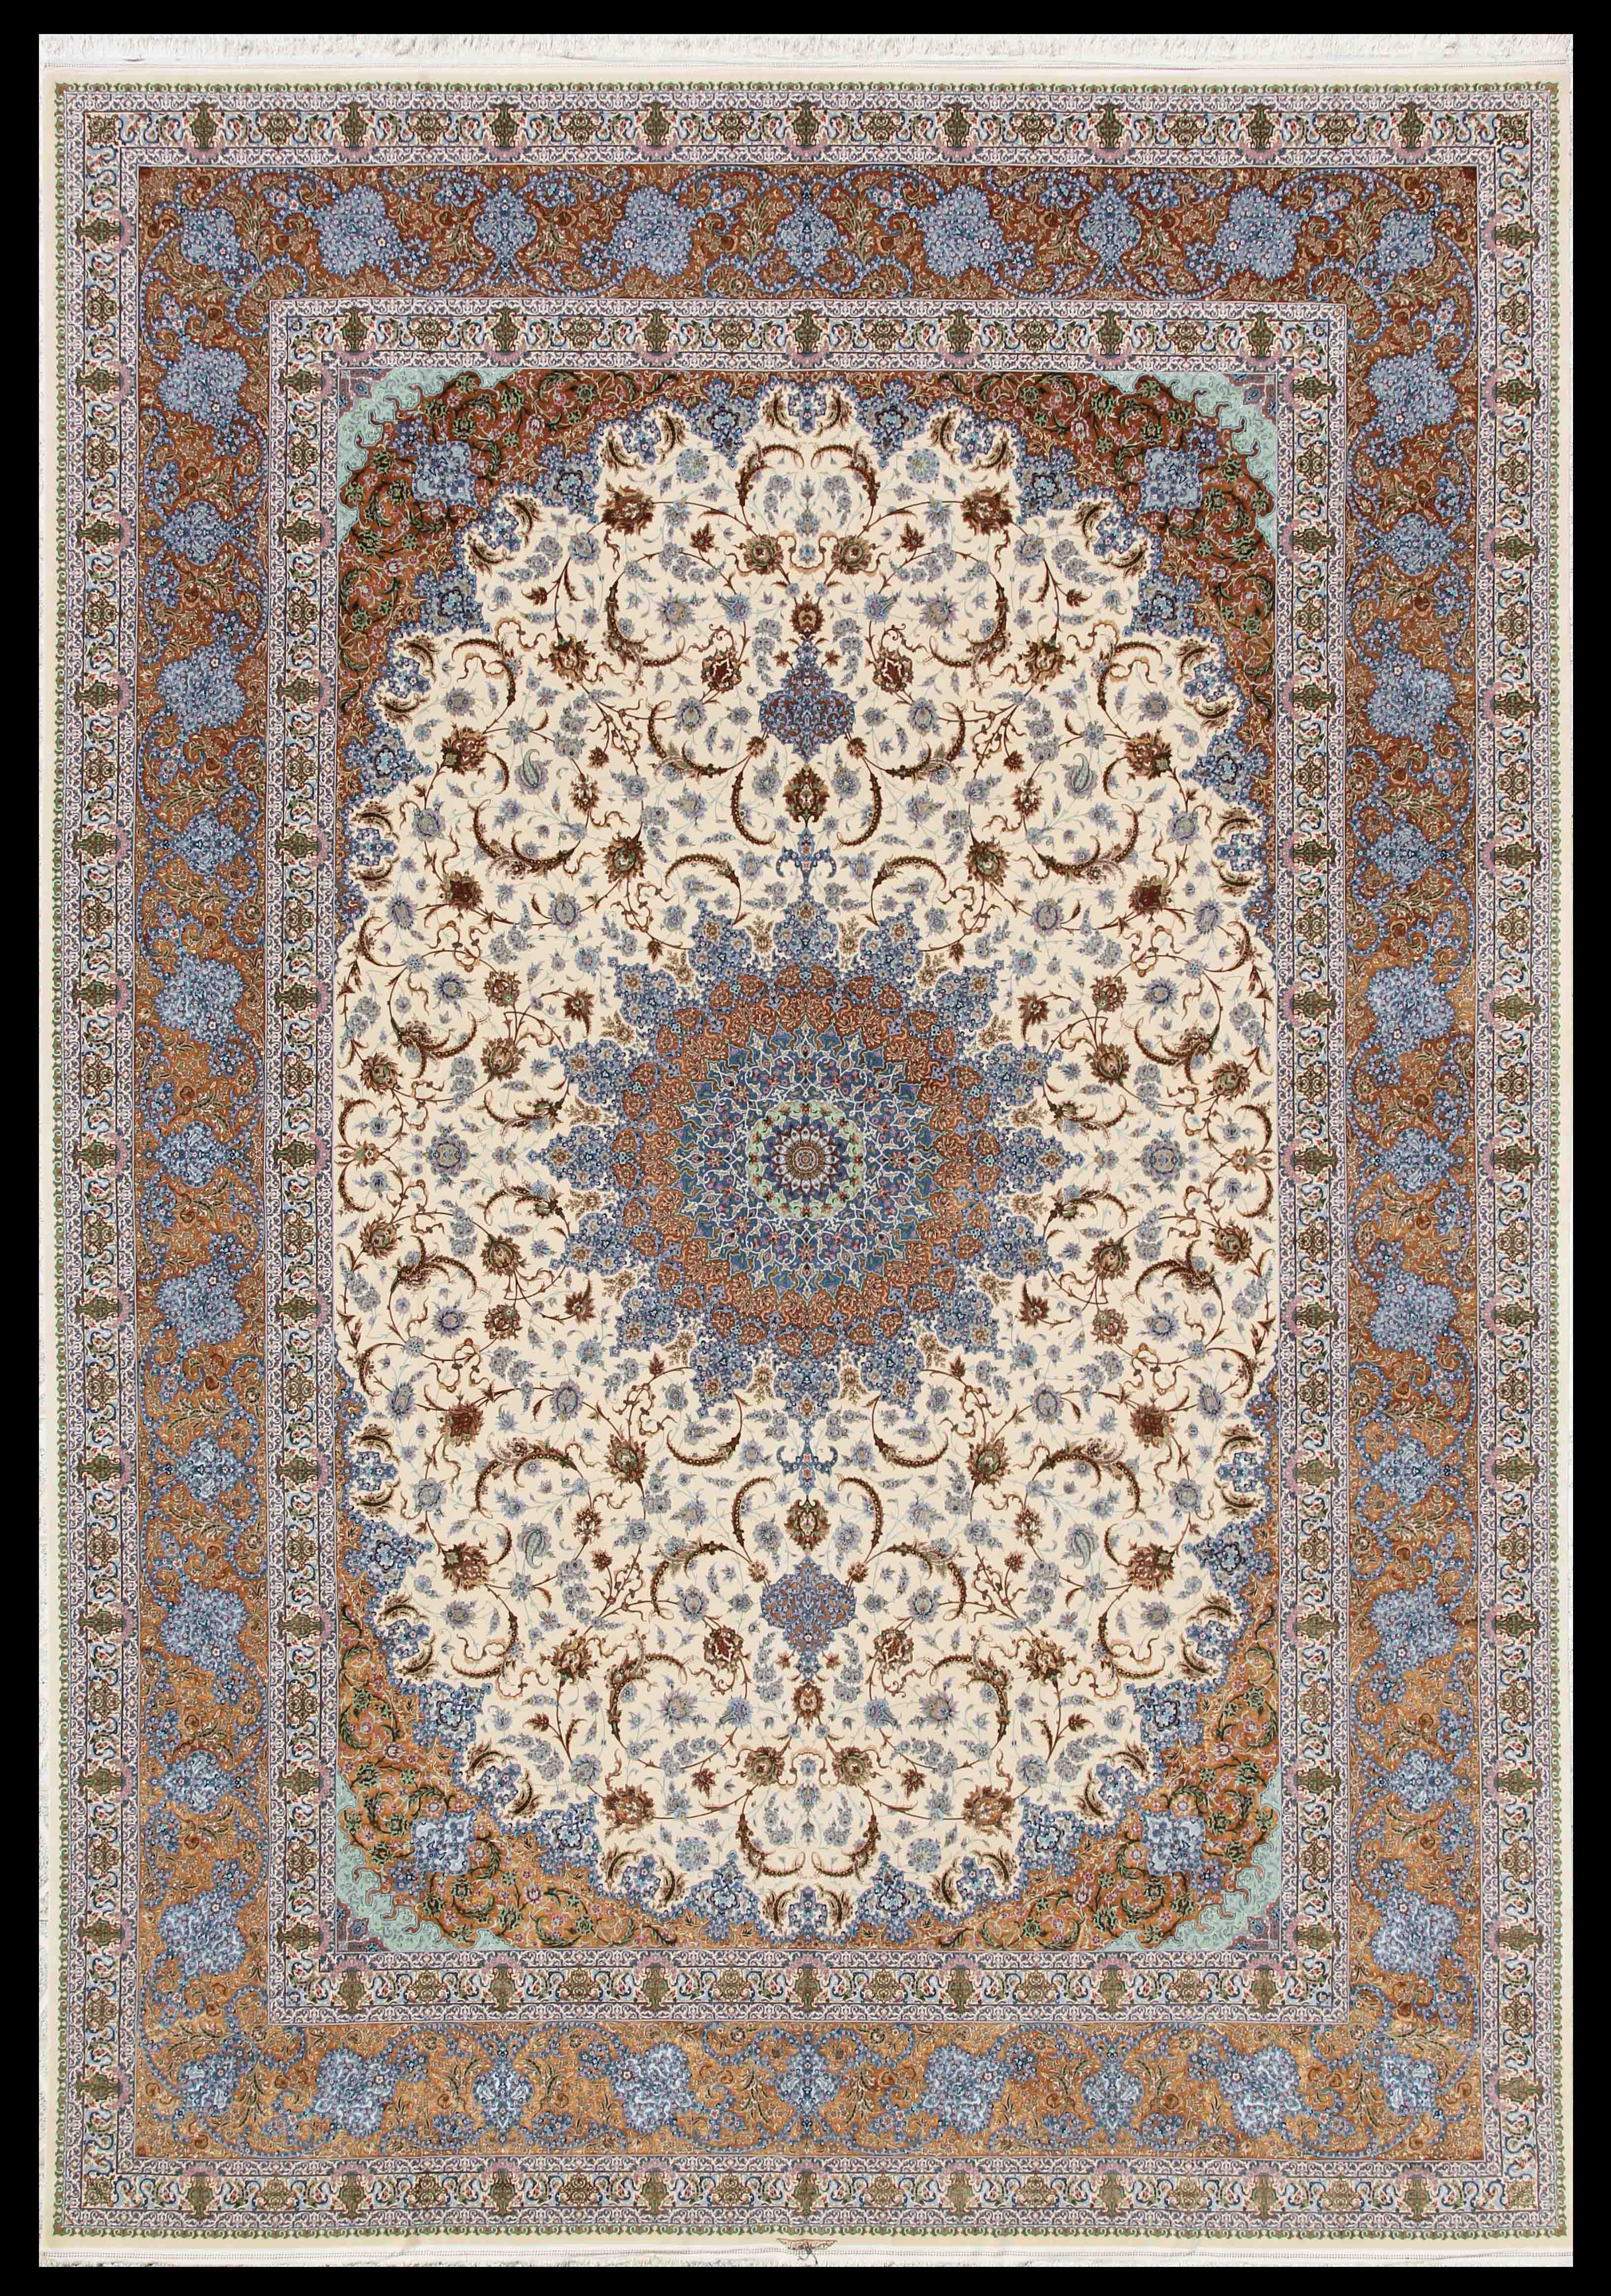 Private Collection Of Isfahan Mehdiei 4x6 5x7 Silk